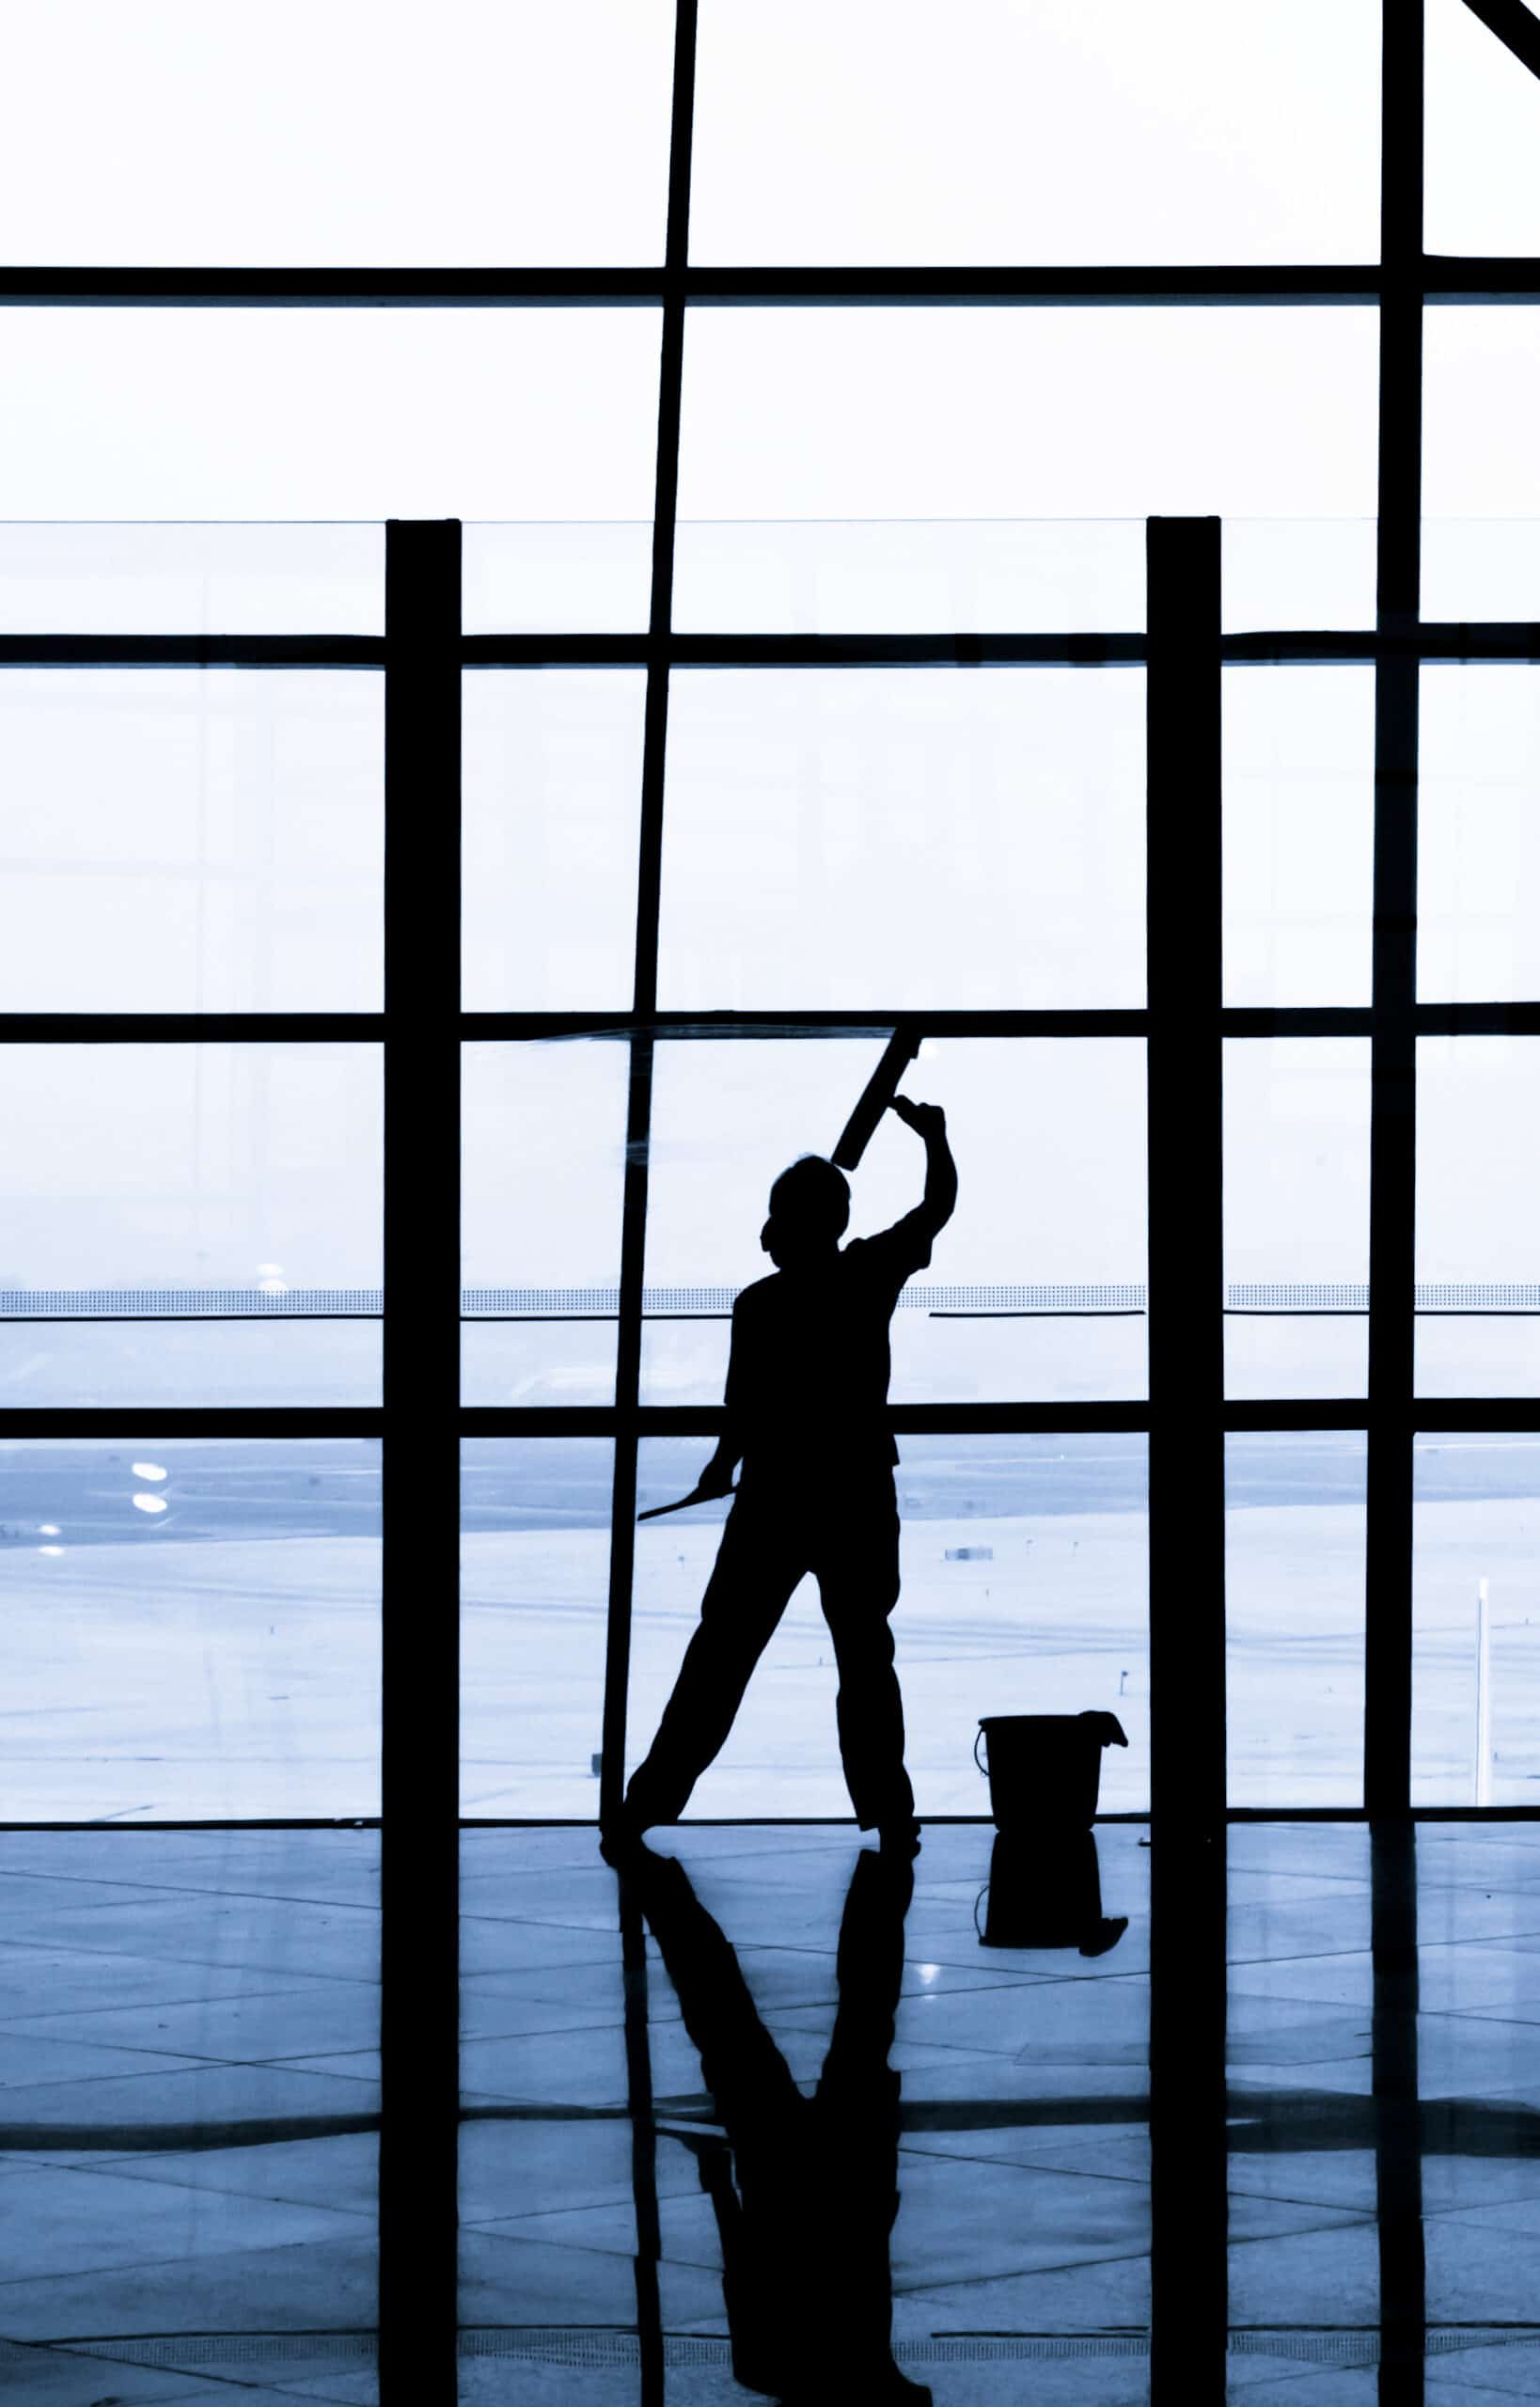 janitor cleaning windows at the airport